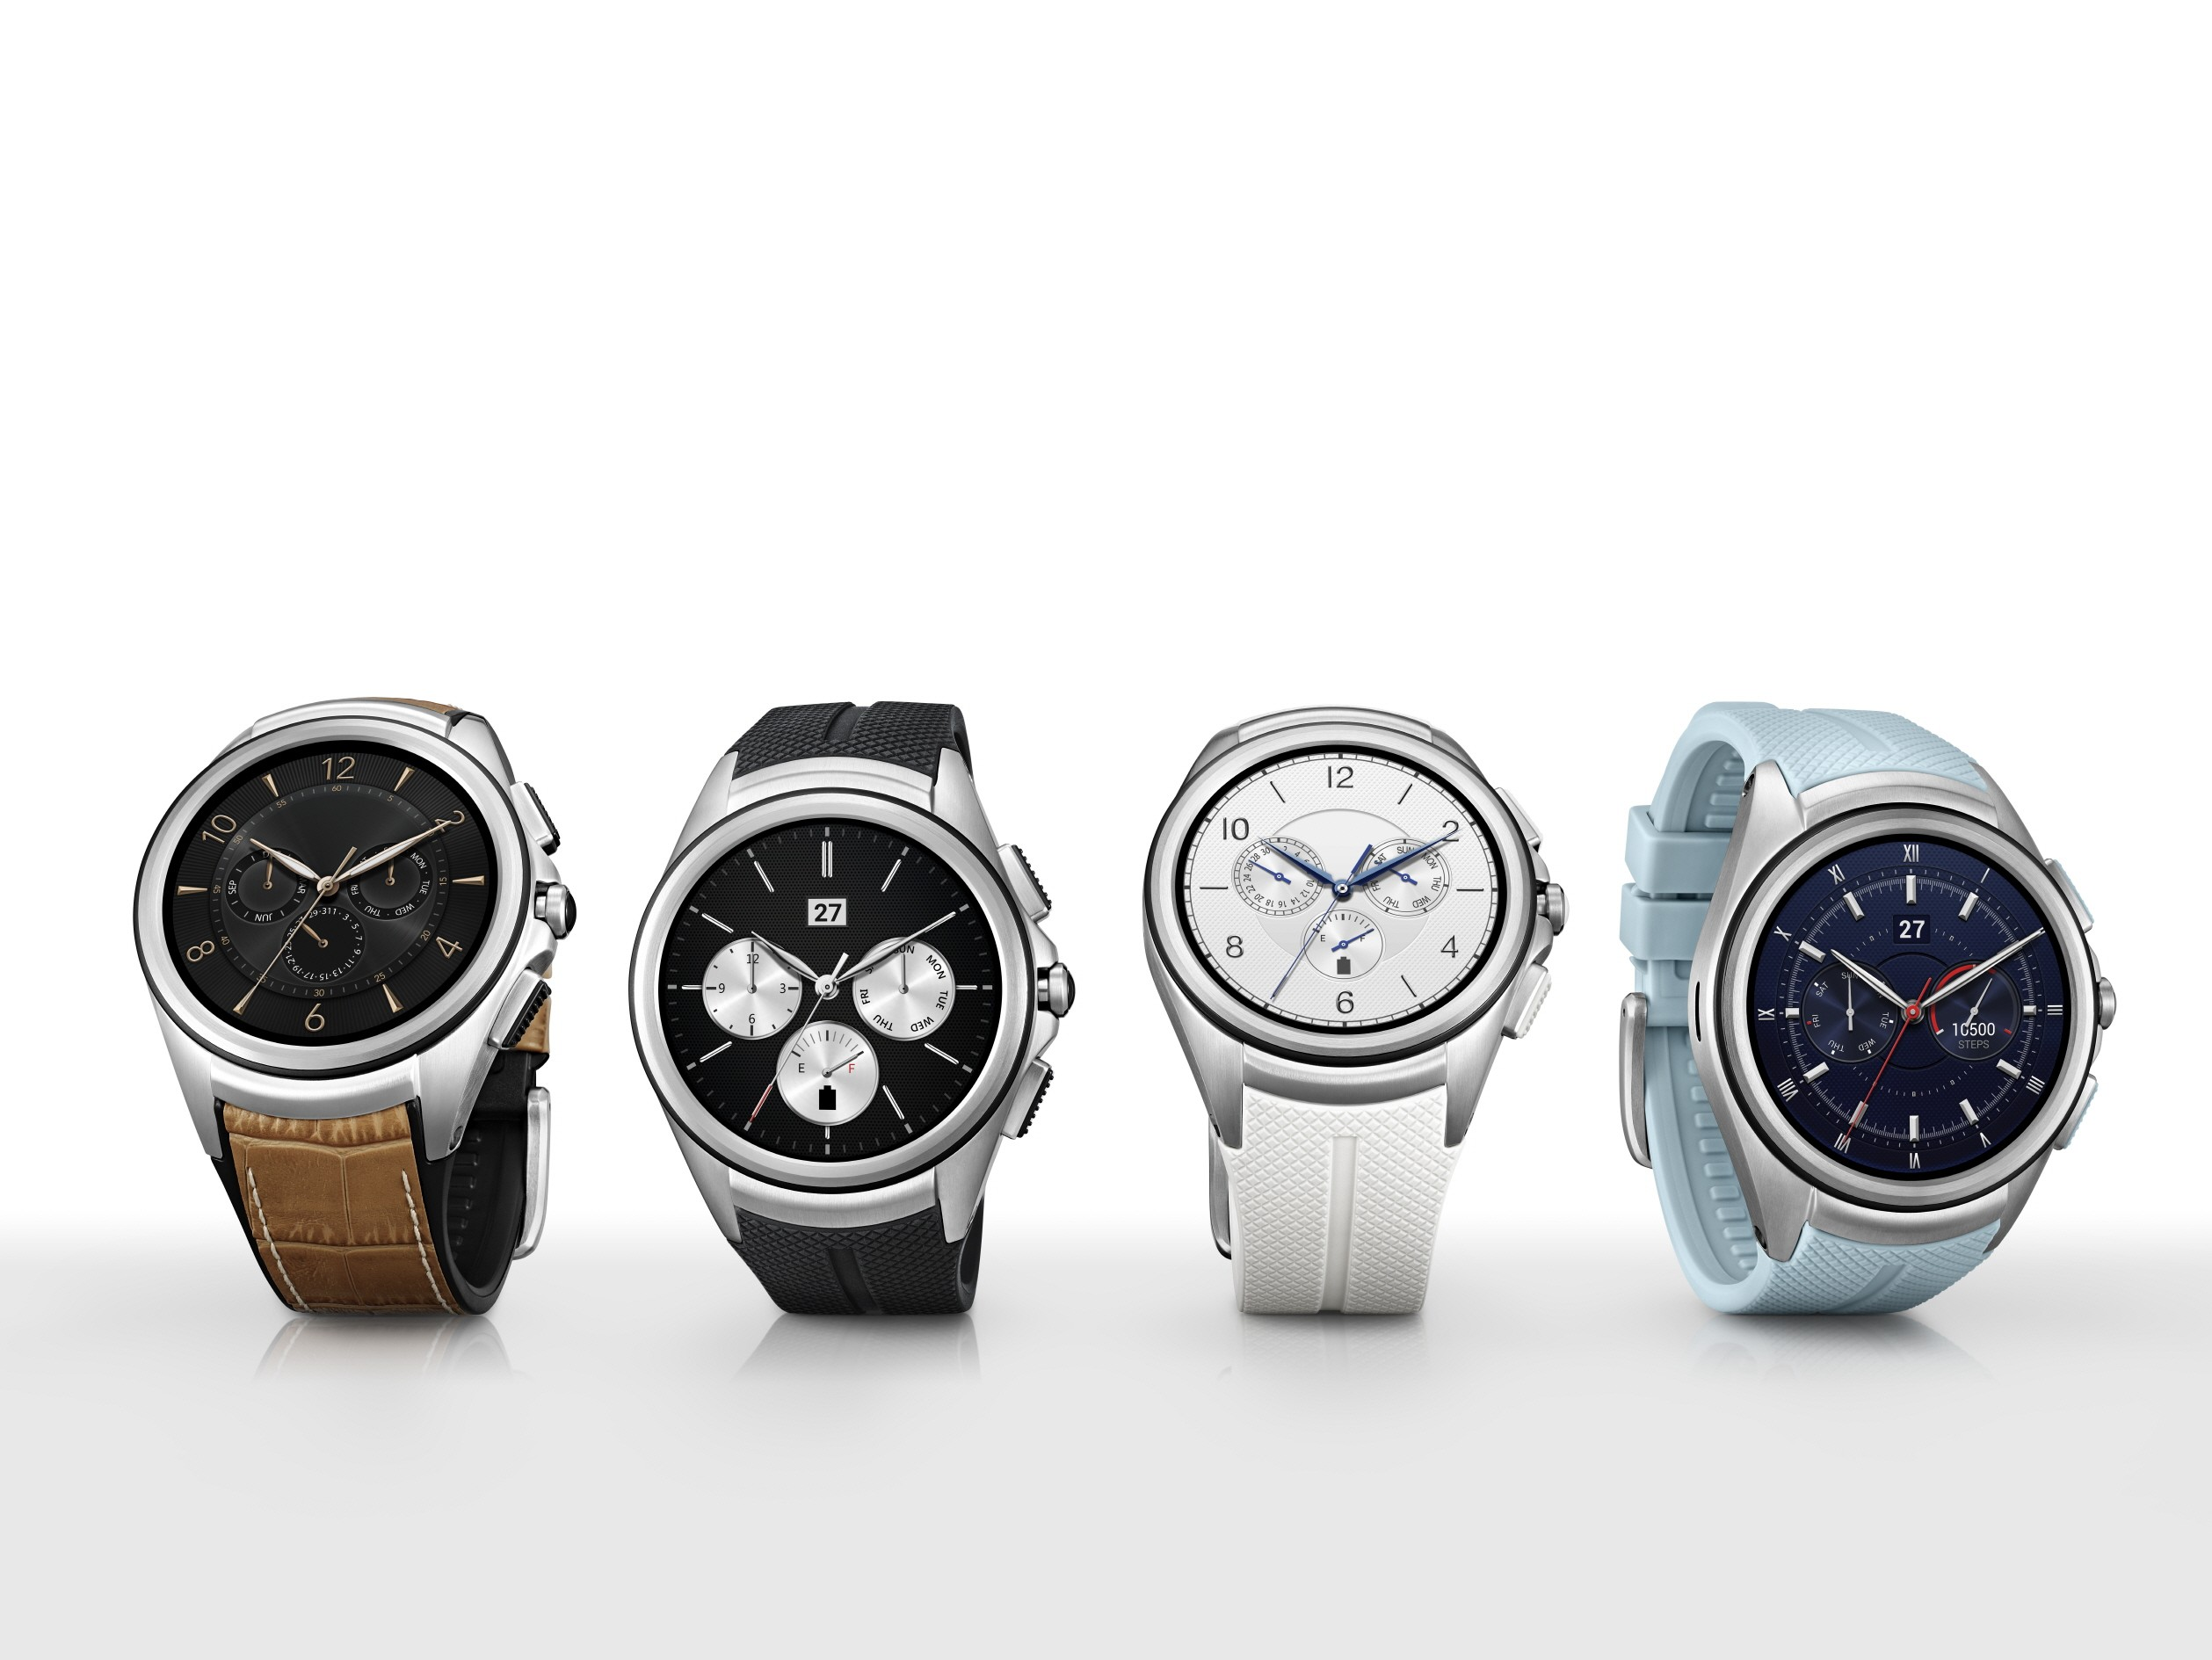 The LG Watch Urbane 2nd Edition in Signature Brown, Space Black, Luxe White and Opal Blue